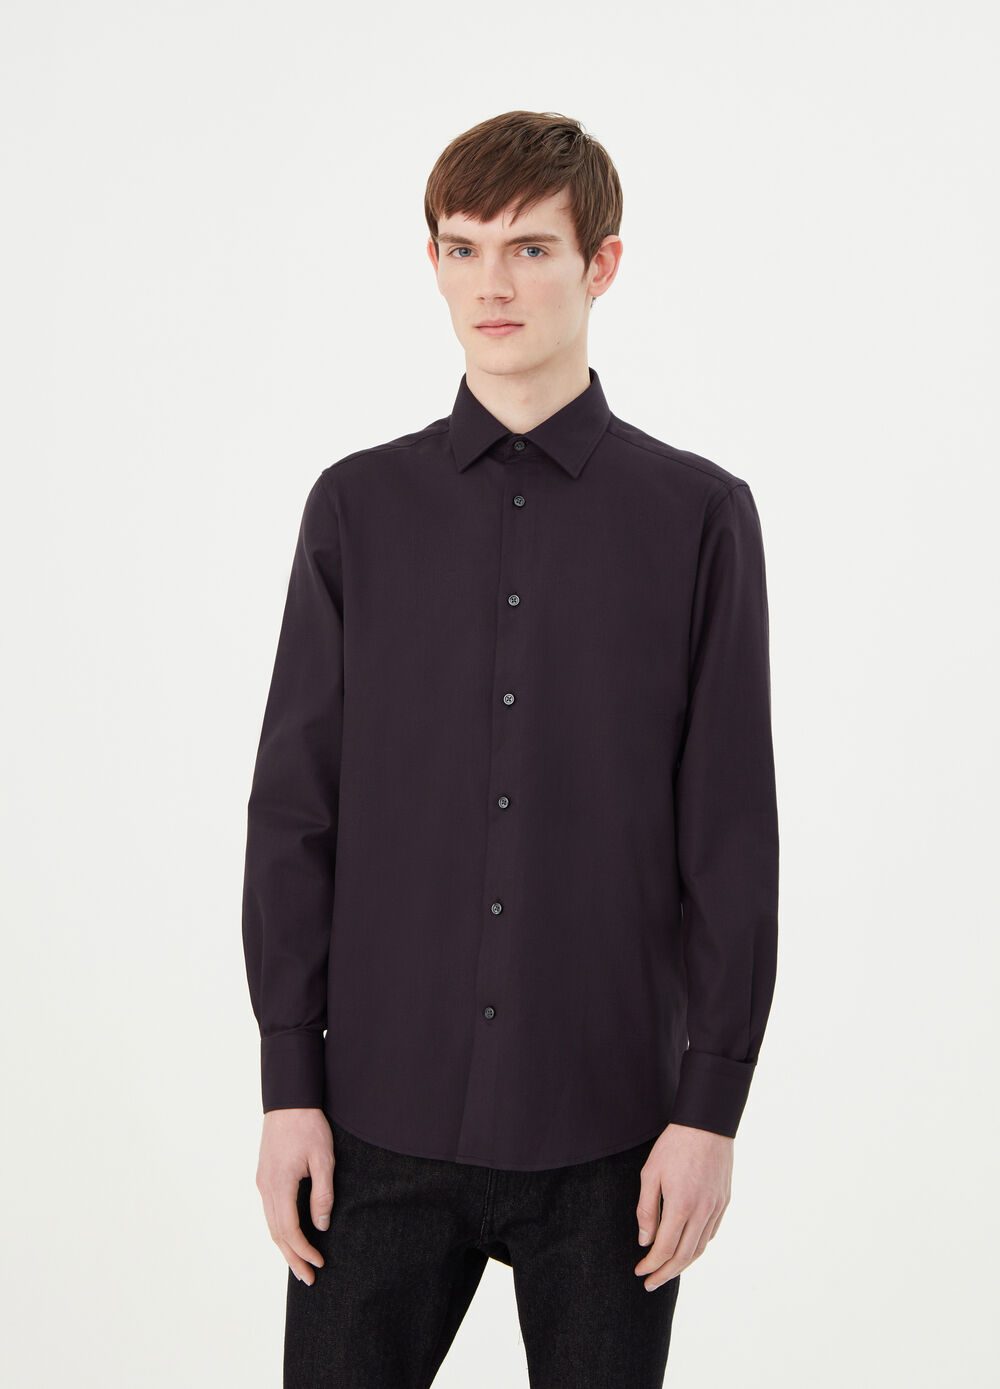 Regular-fit charmeuse-weave shirt